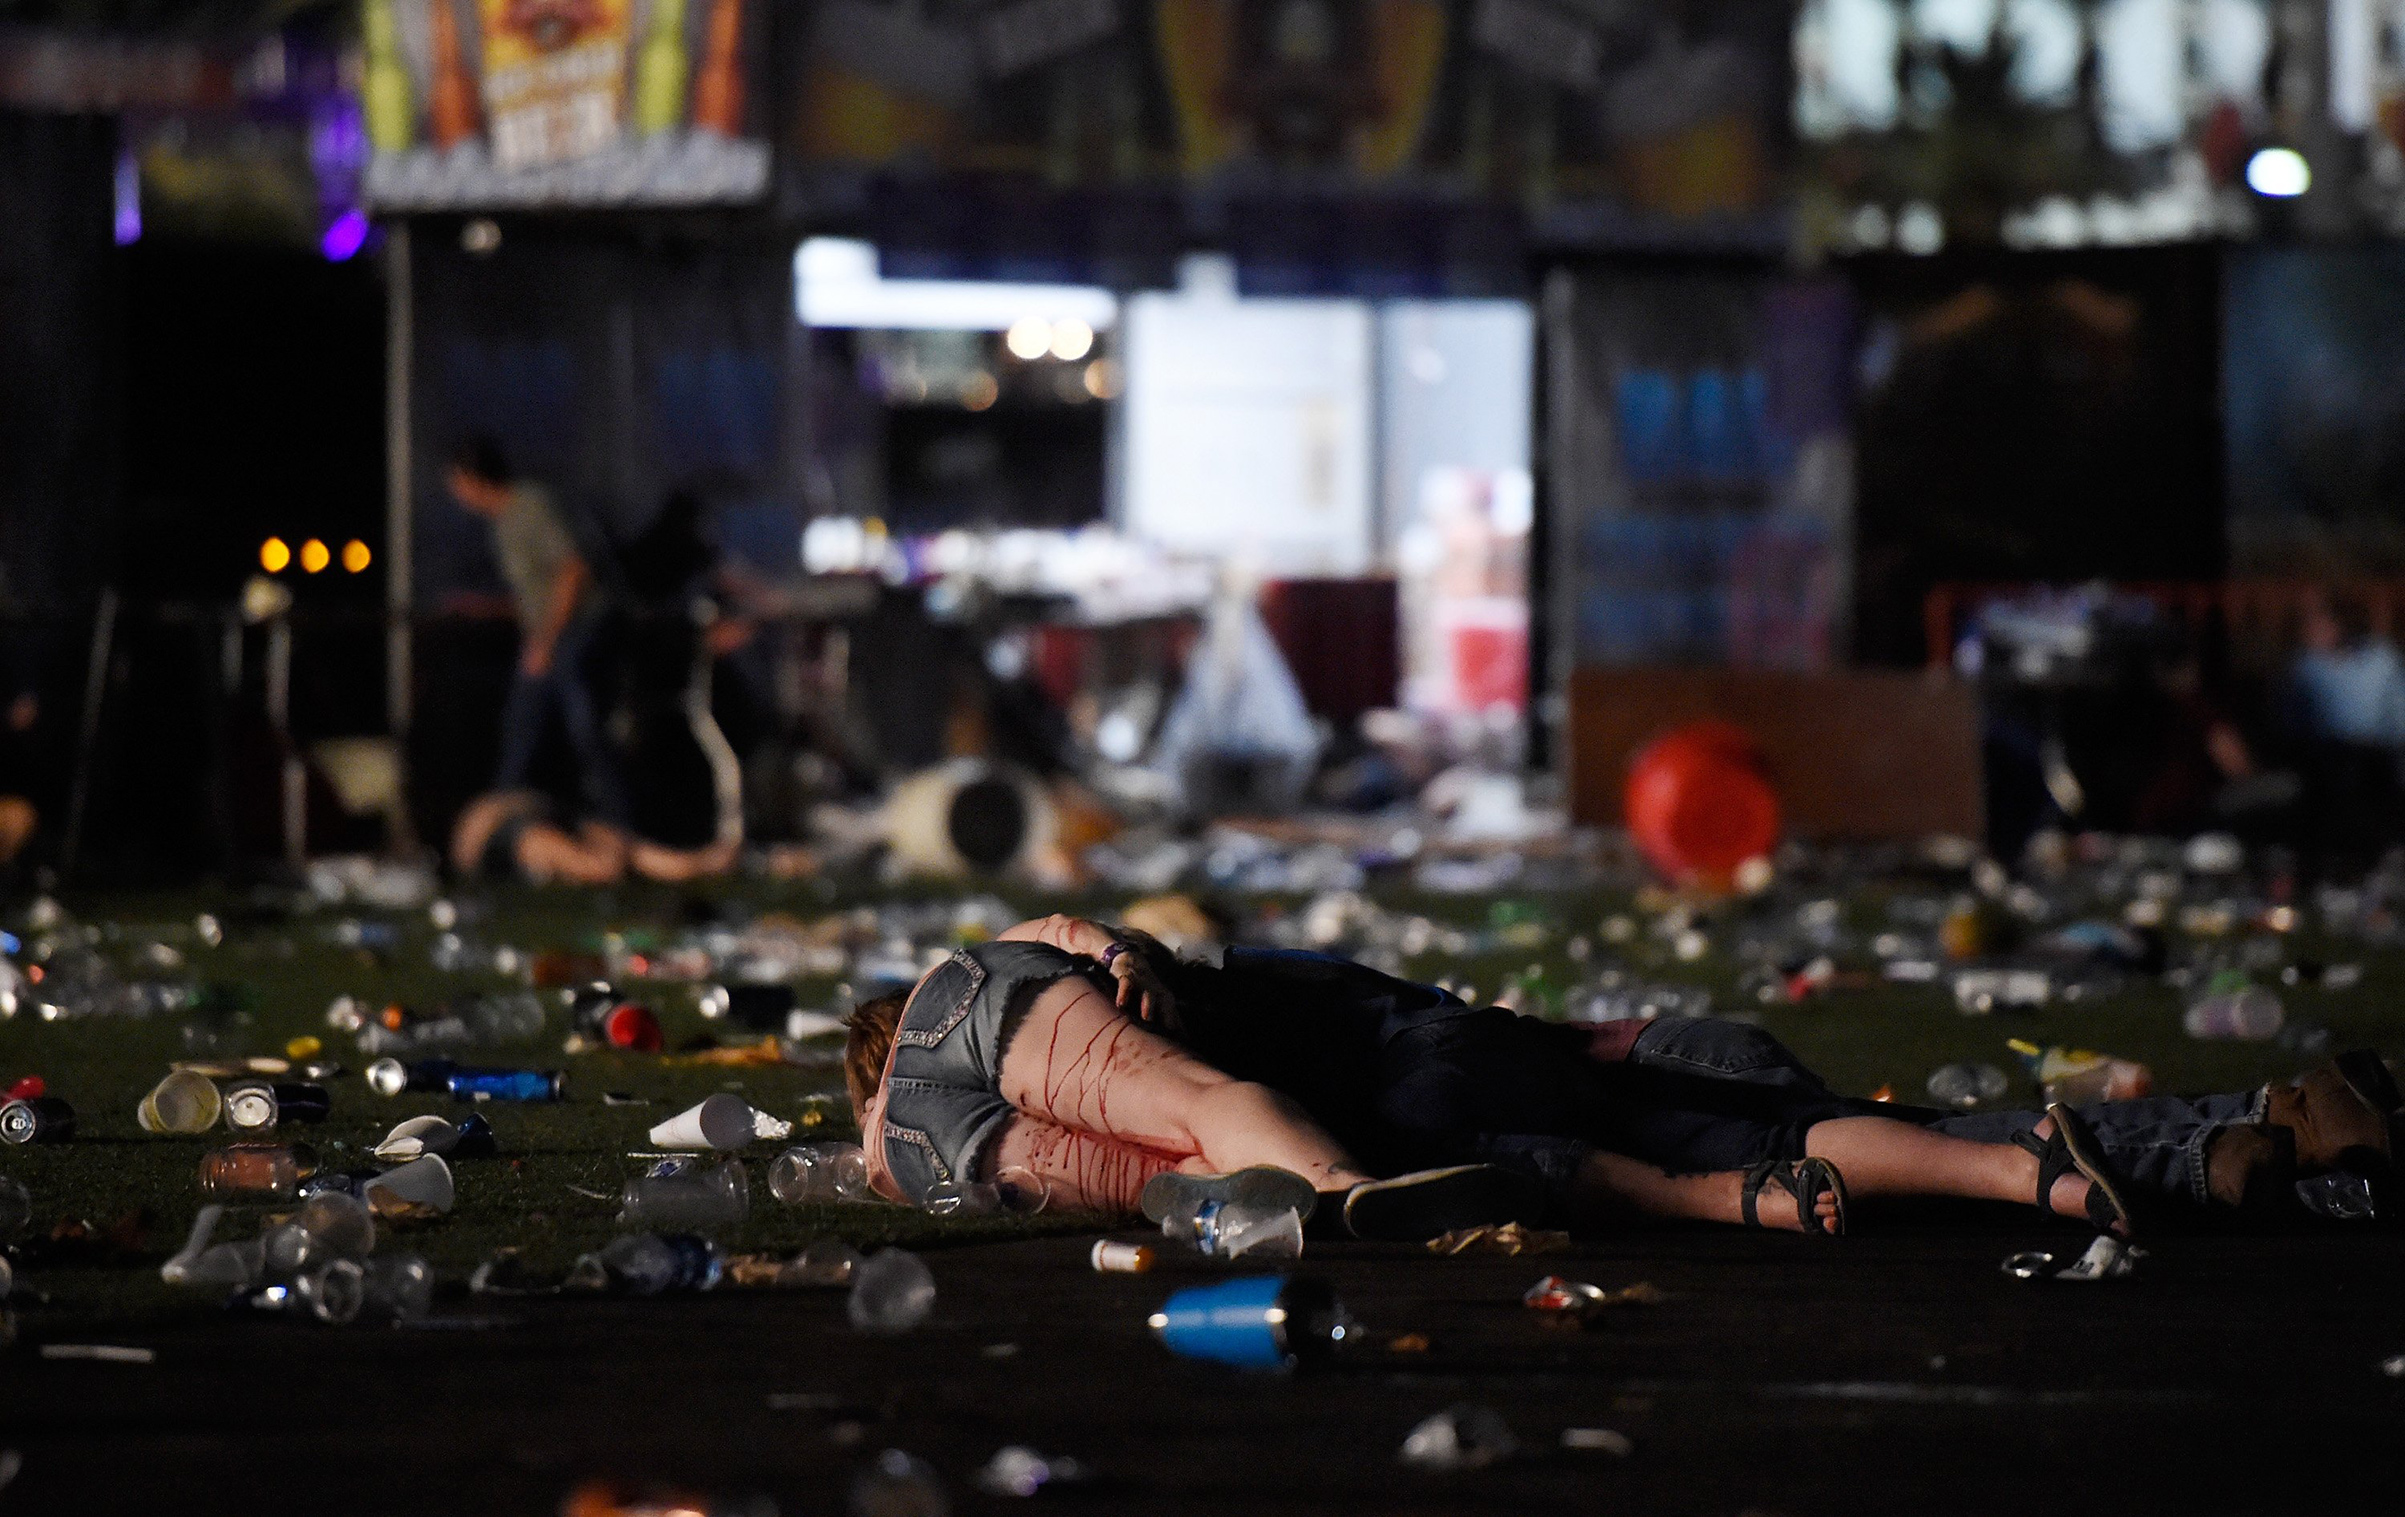 Victims of a shooting at the Route 91 Harvest country music festival in Las Vegas on Oct. 1, 2017.